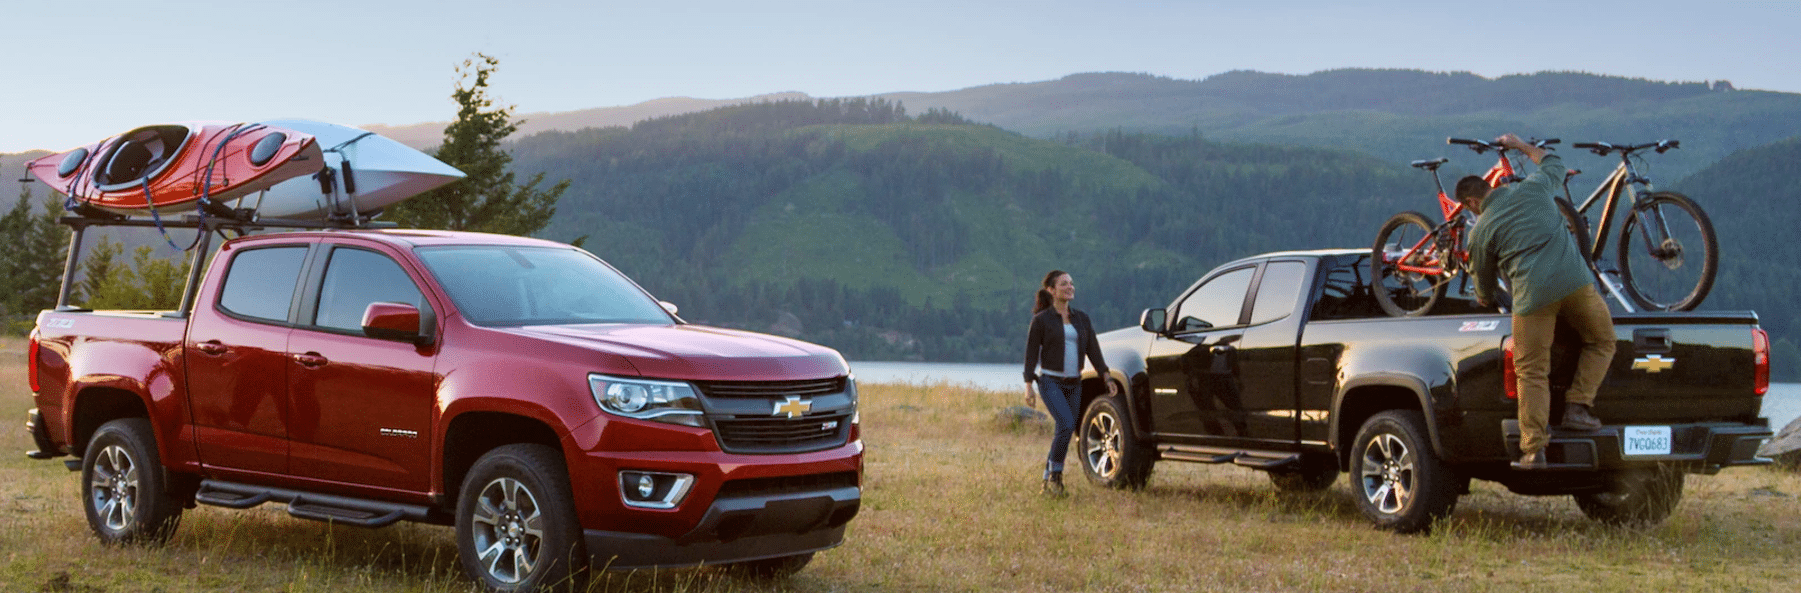 Chevrolet Colorado Chevy Rochester Dealers